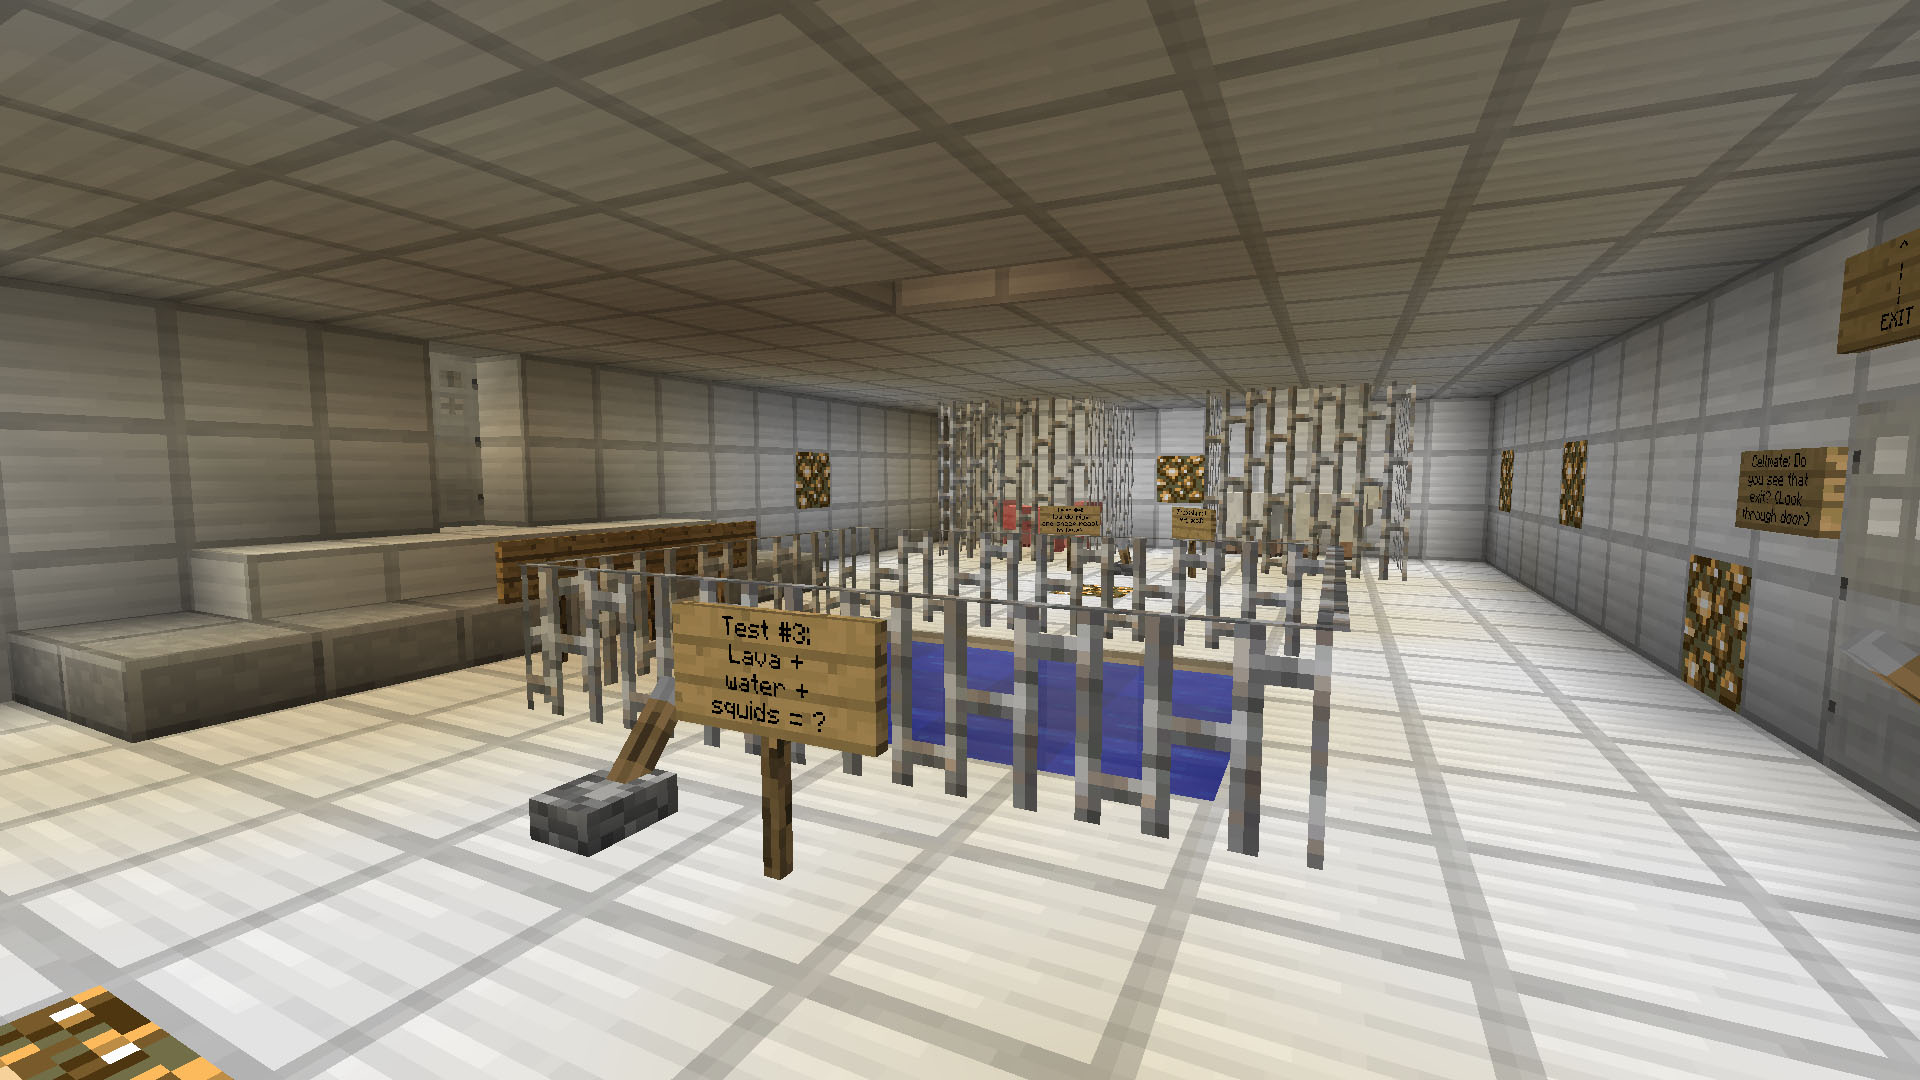 http://minecraft-forum.net/wp-content/uploads/2013/04/a4d89__Escape-The-Lab-Map-2.jpg